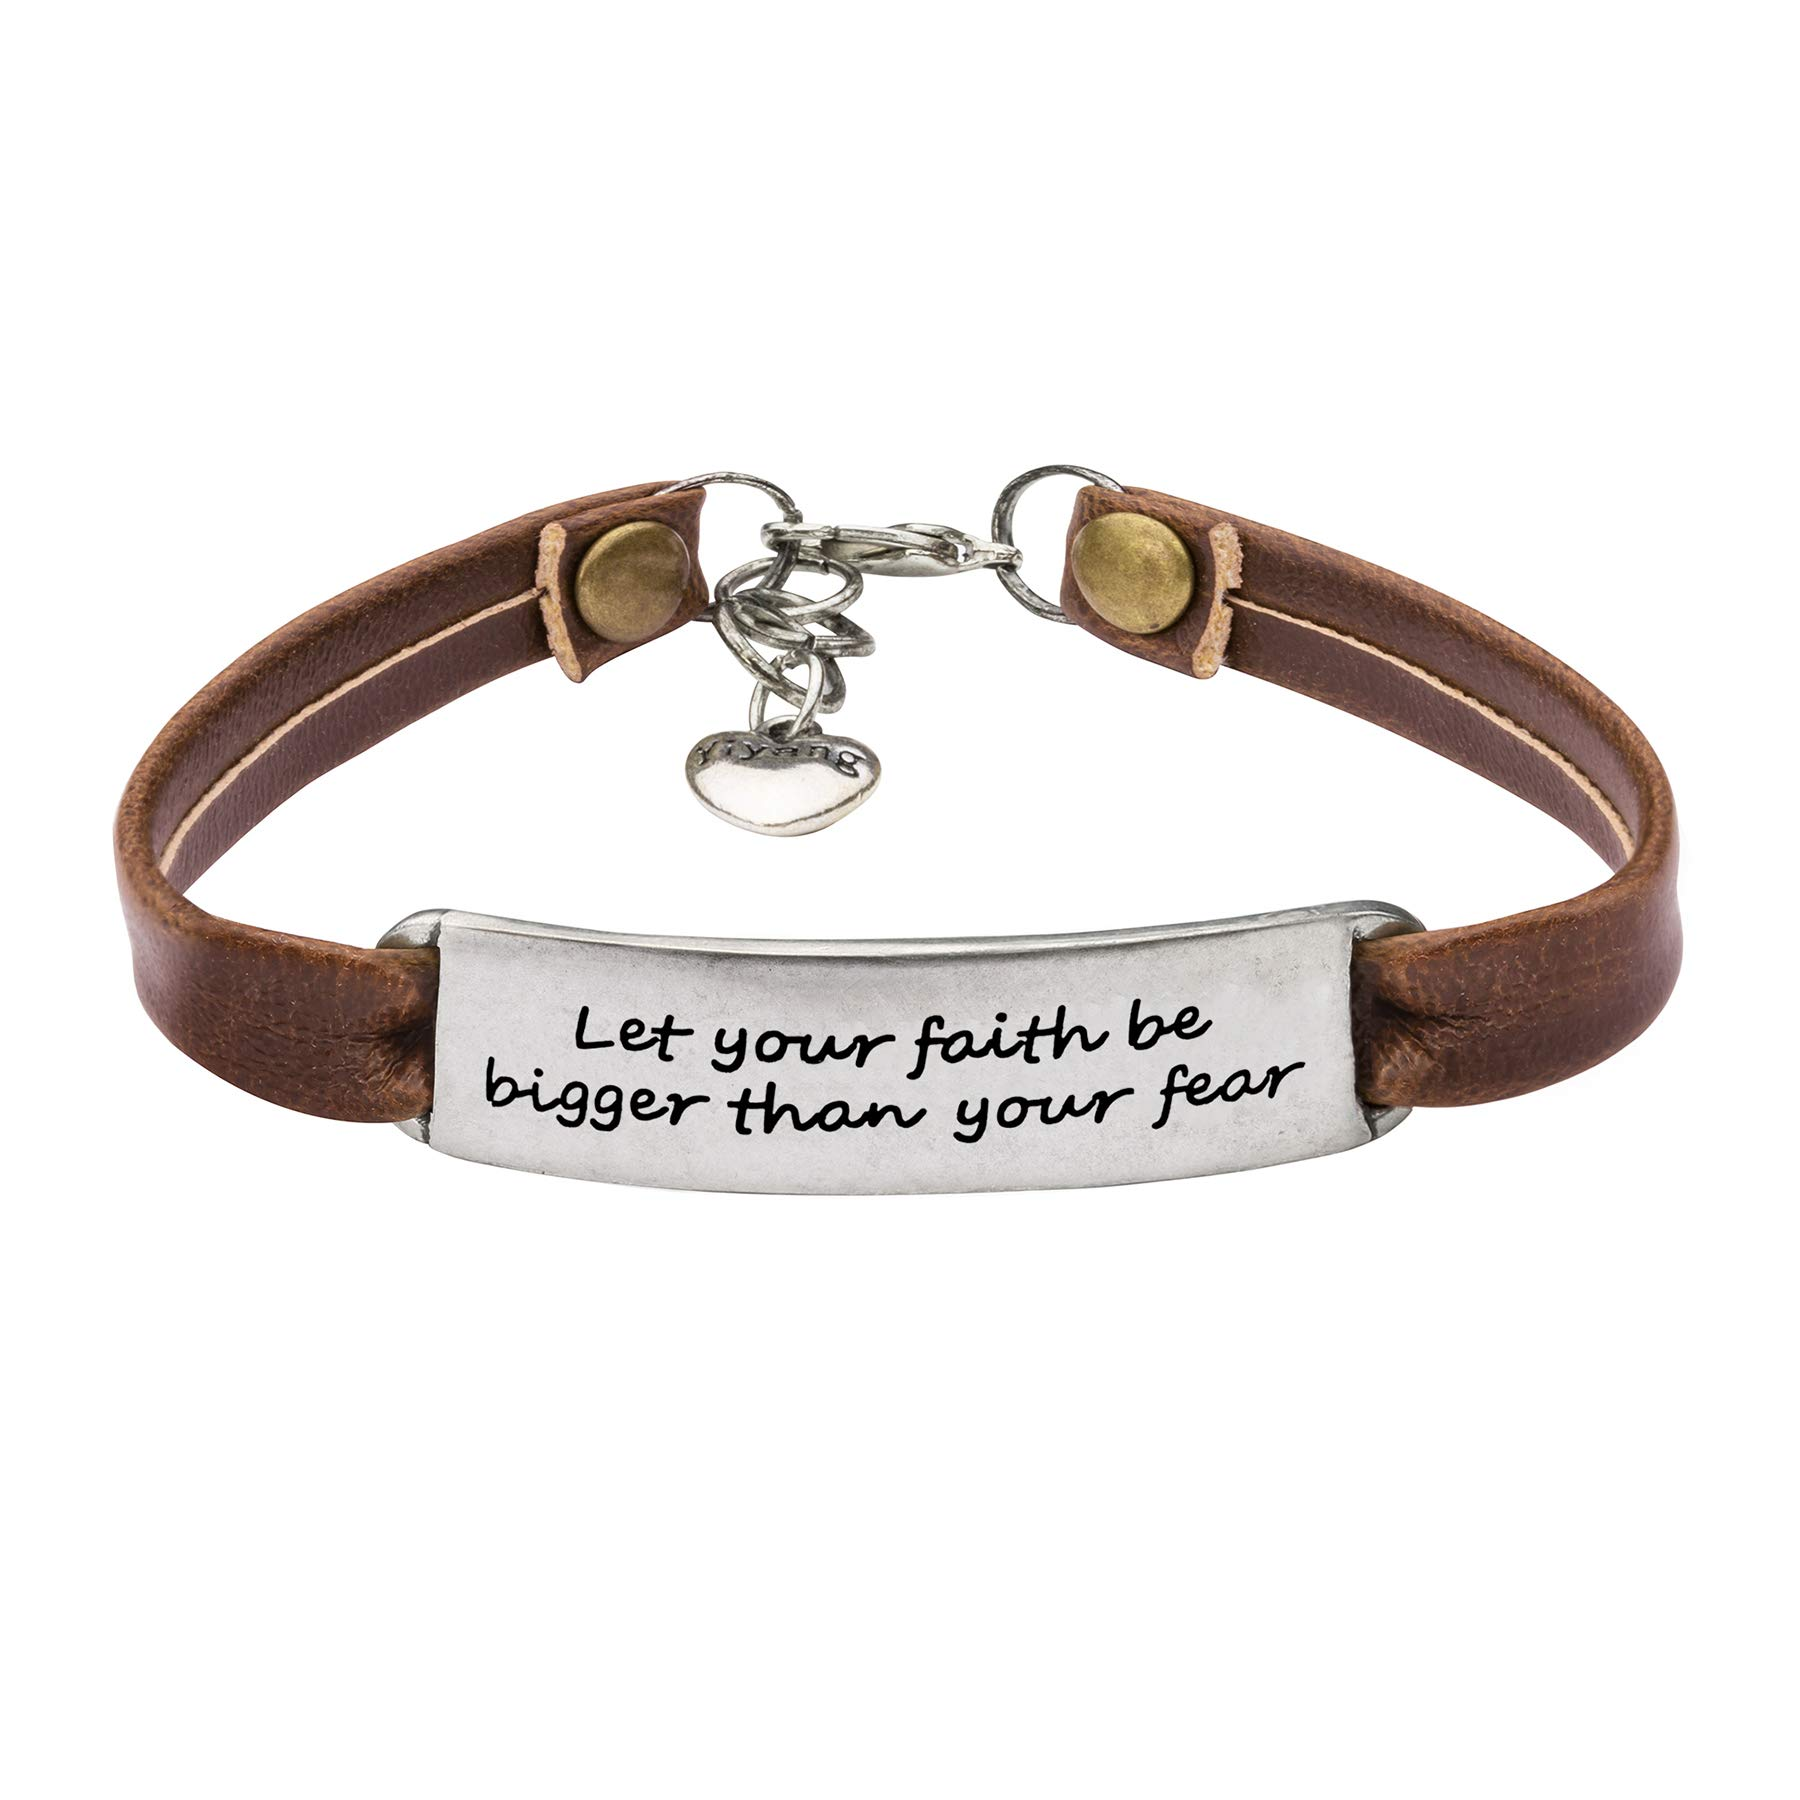 Ladies Vintage Antique Inspirational Leather Bangle Bracelets Jewellery Engraved Message Encourage Let Your Faith Be Bigger Than Your Fear by Yiyang